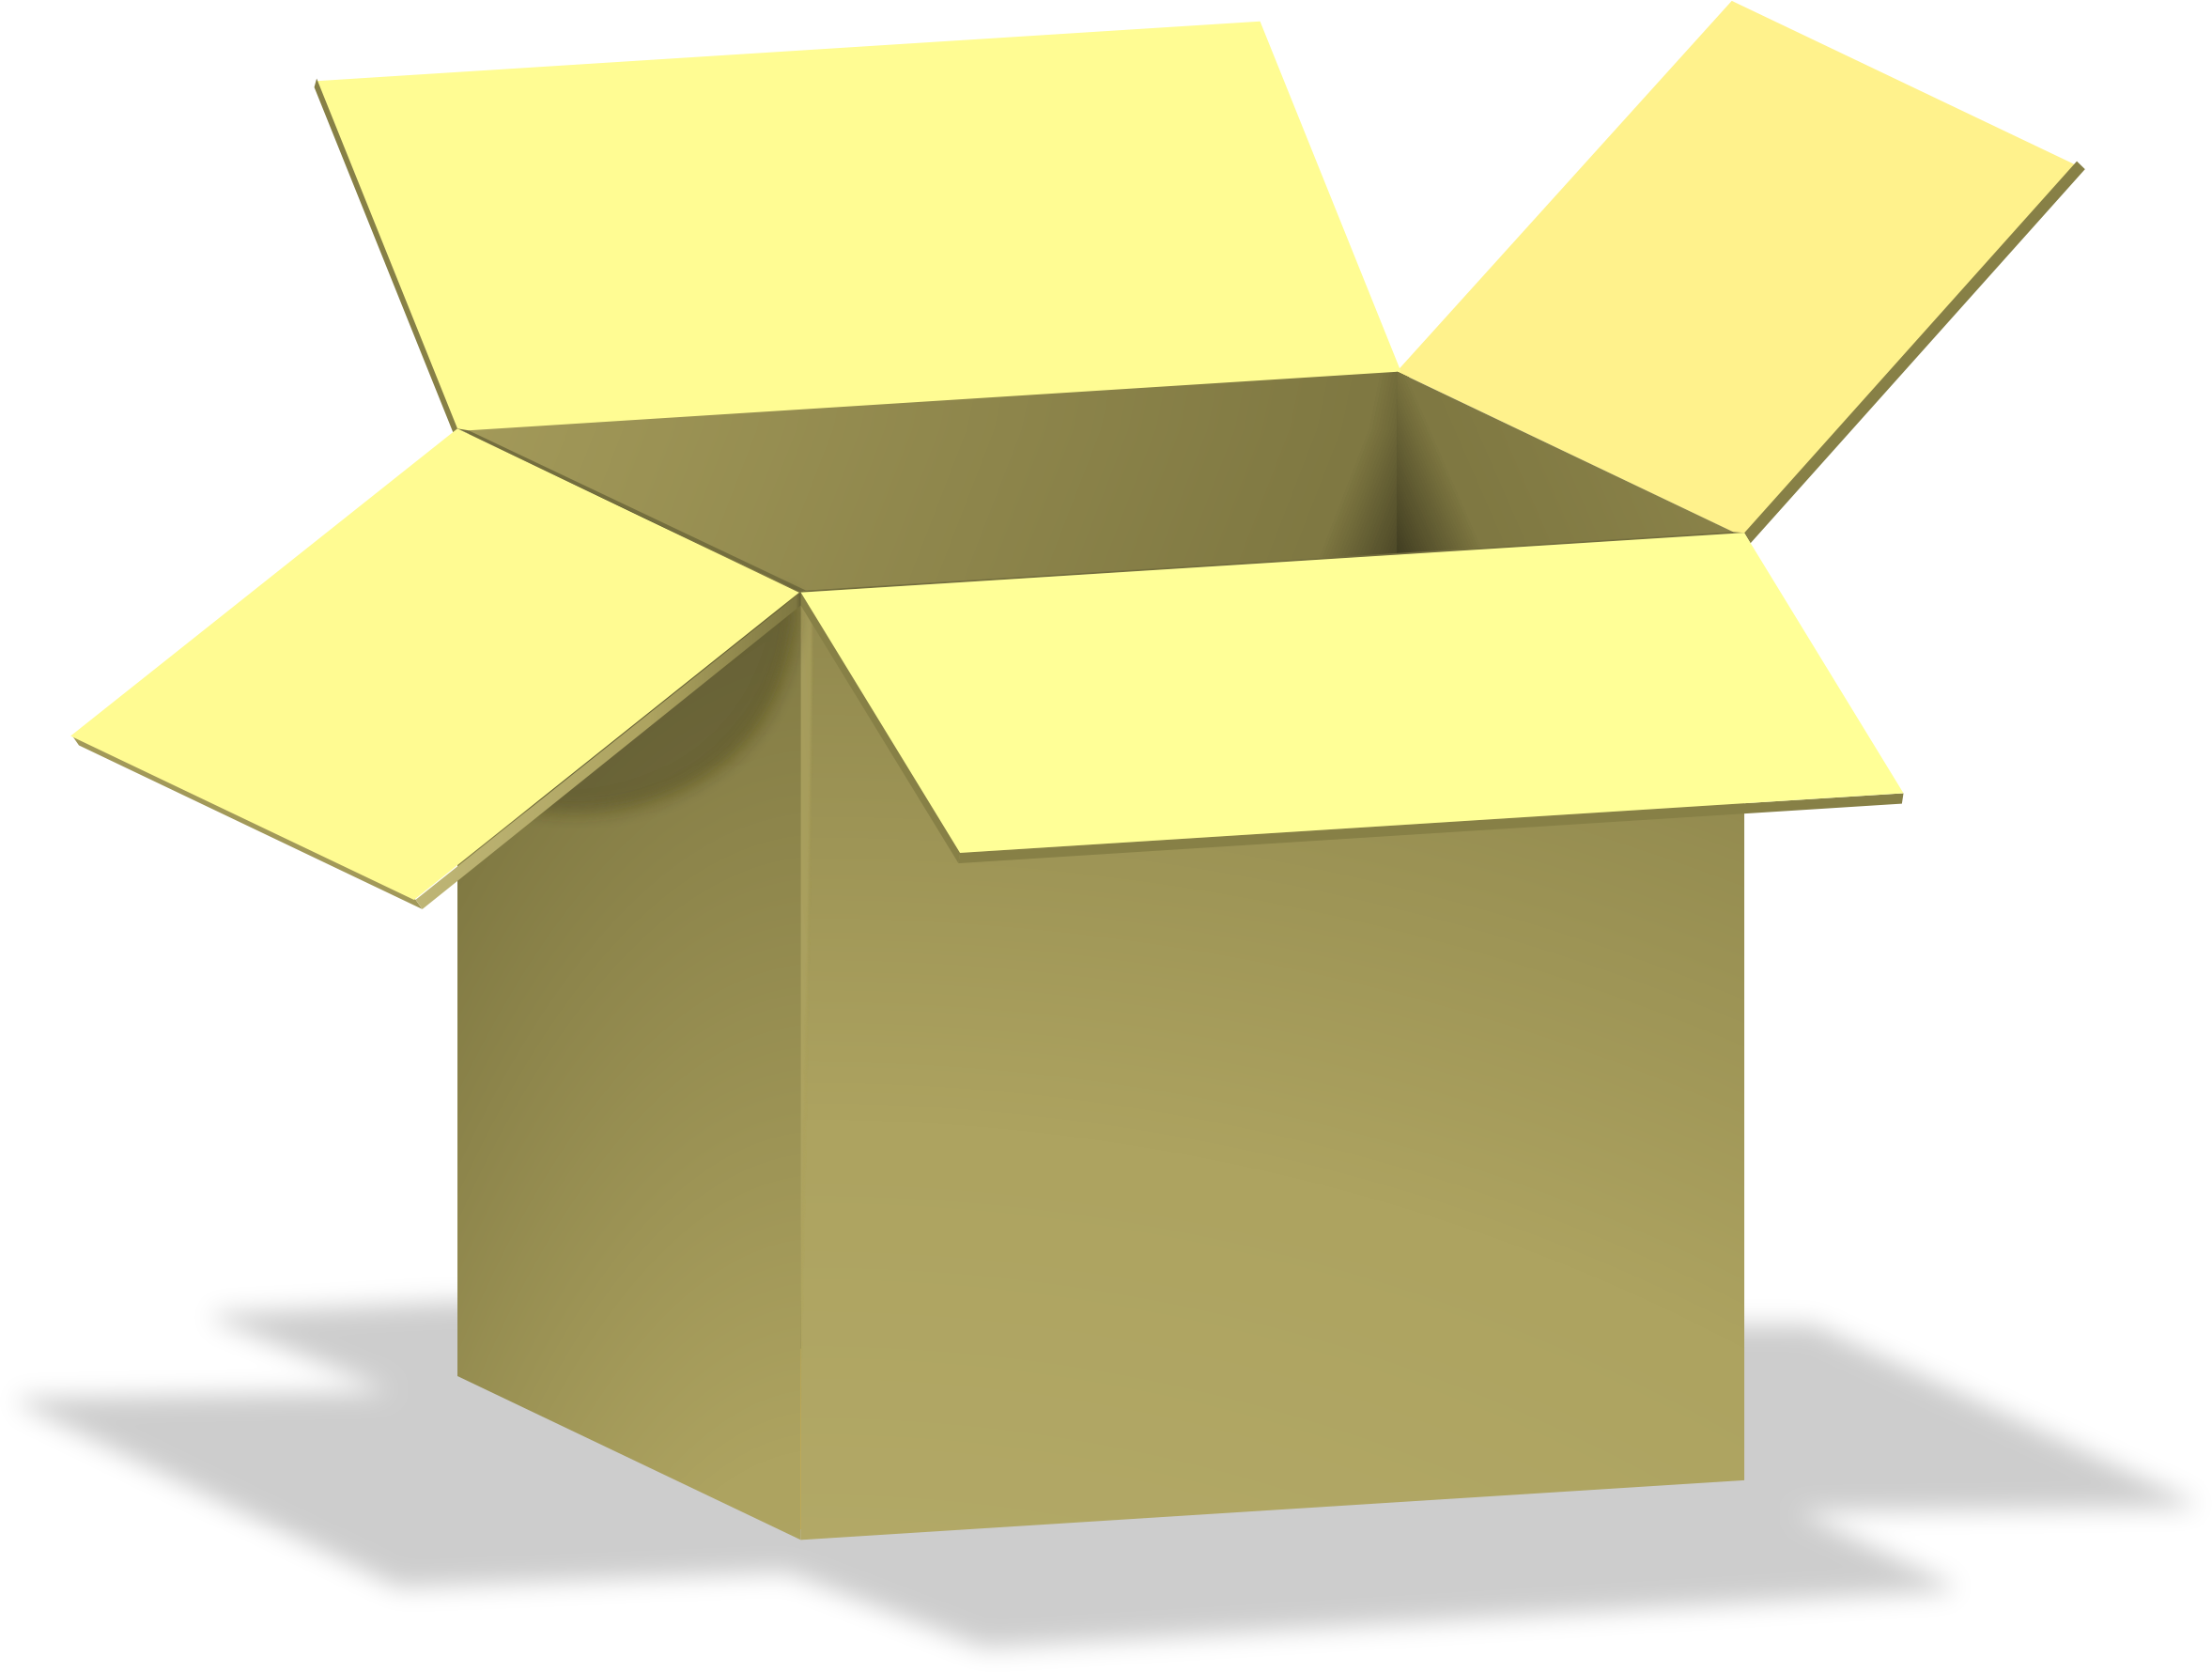 Download this high resolution Box PNG Image Without Background